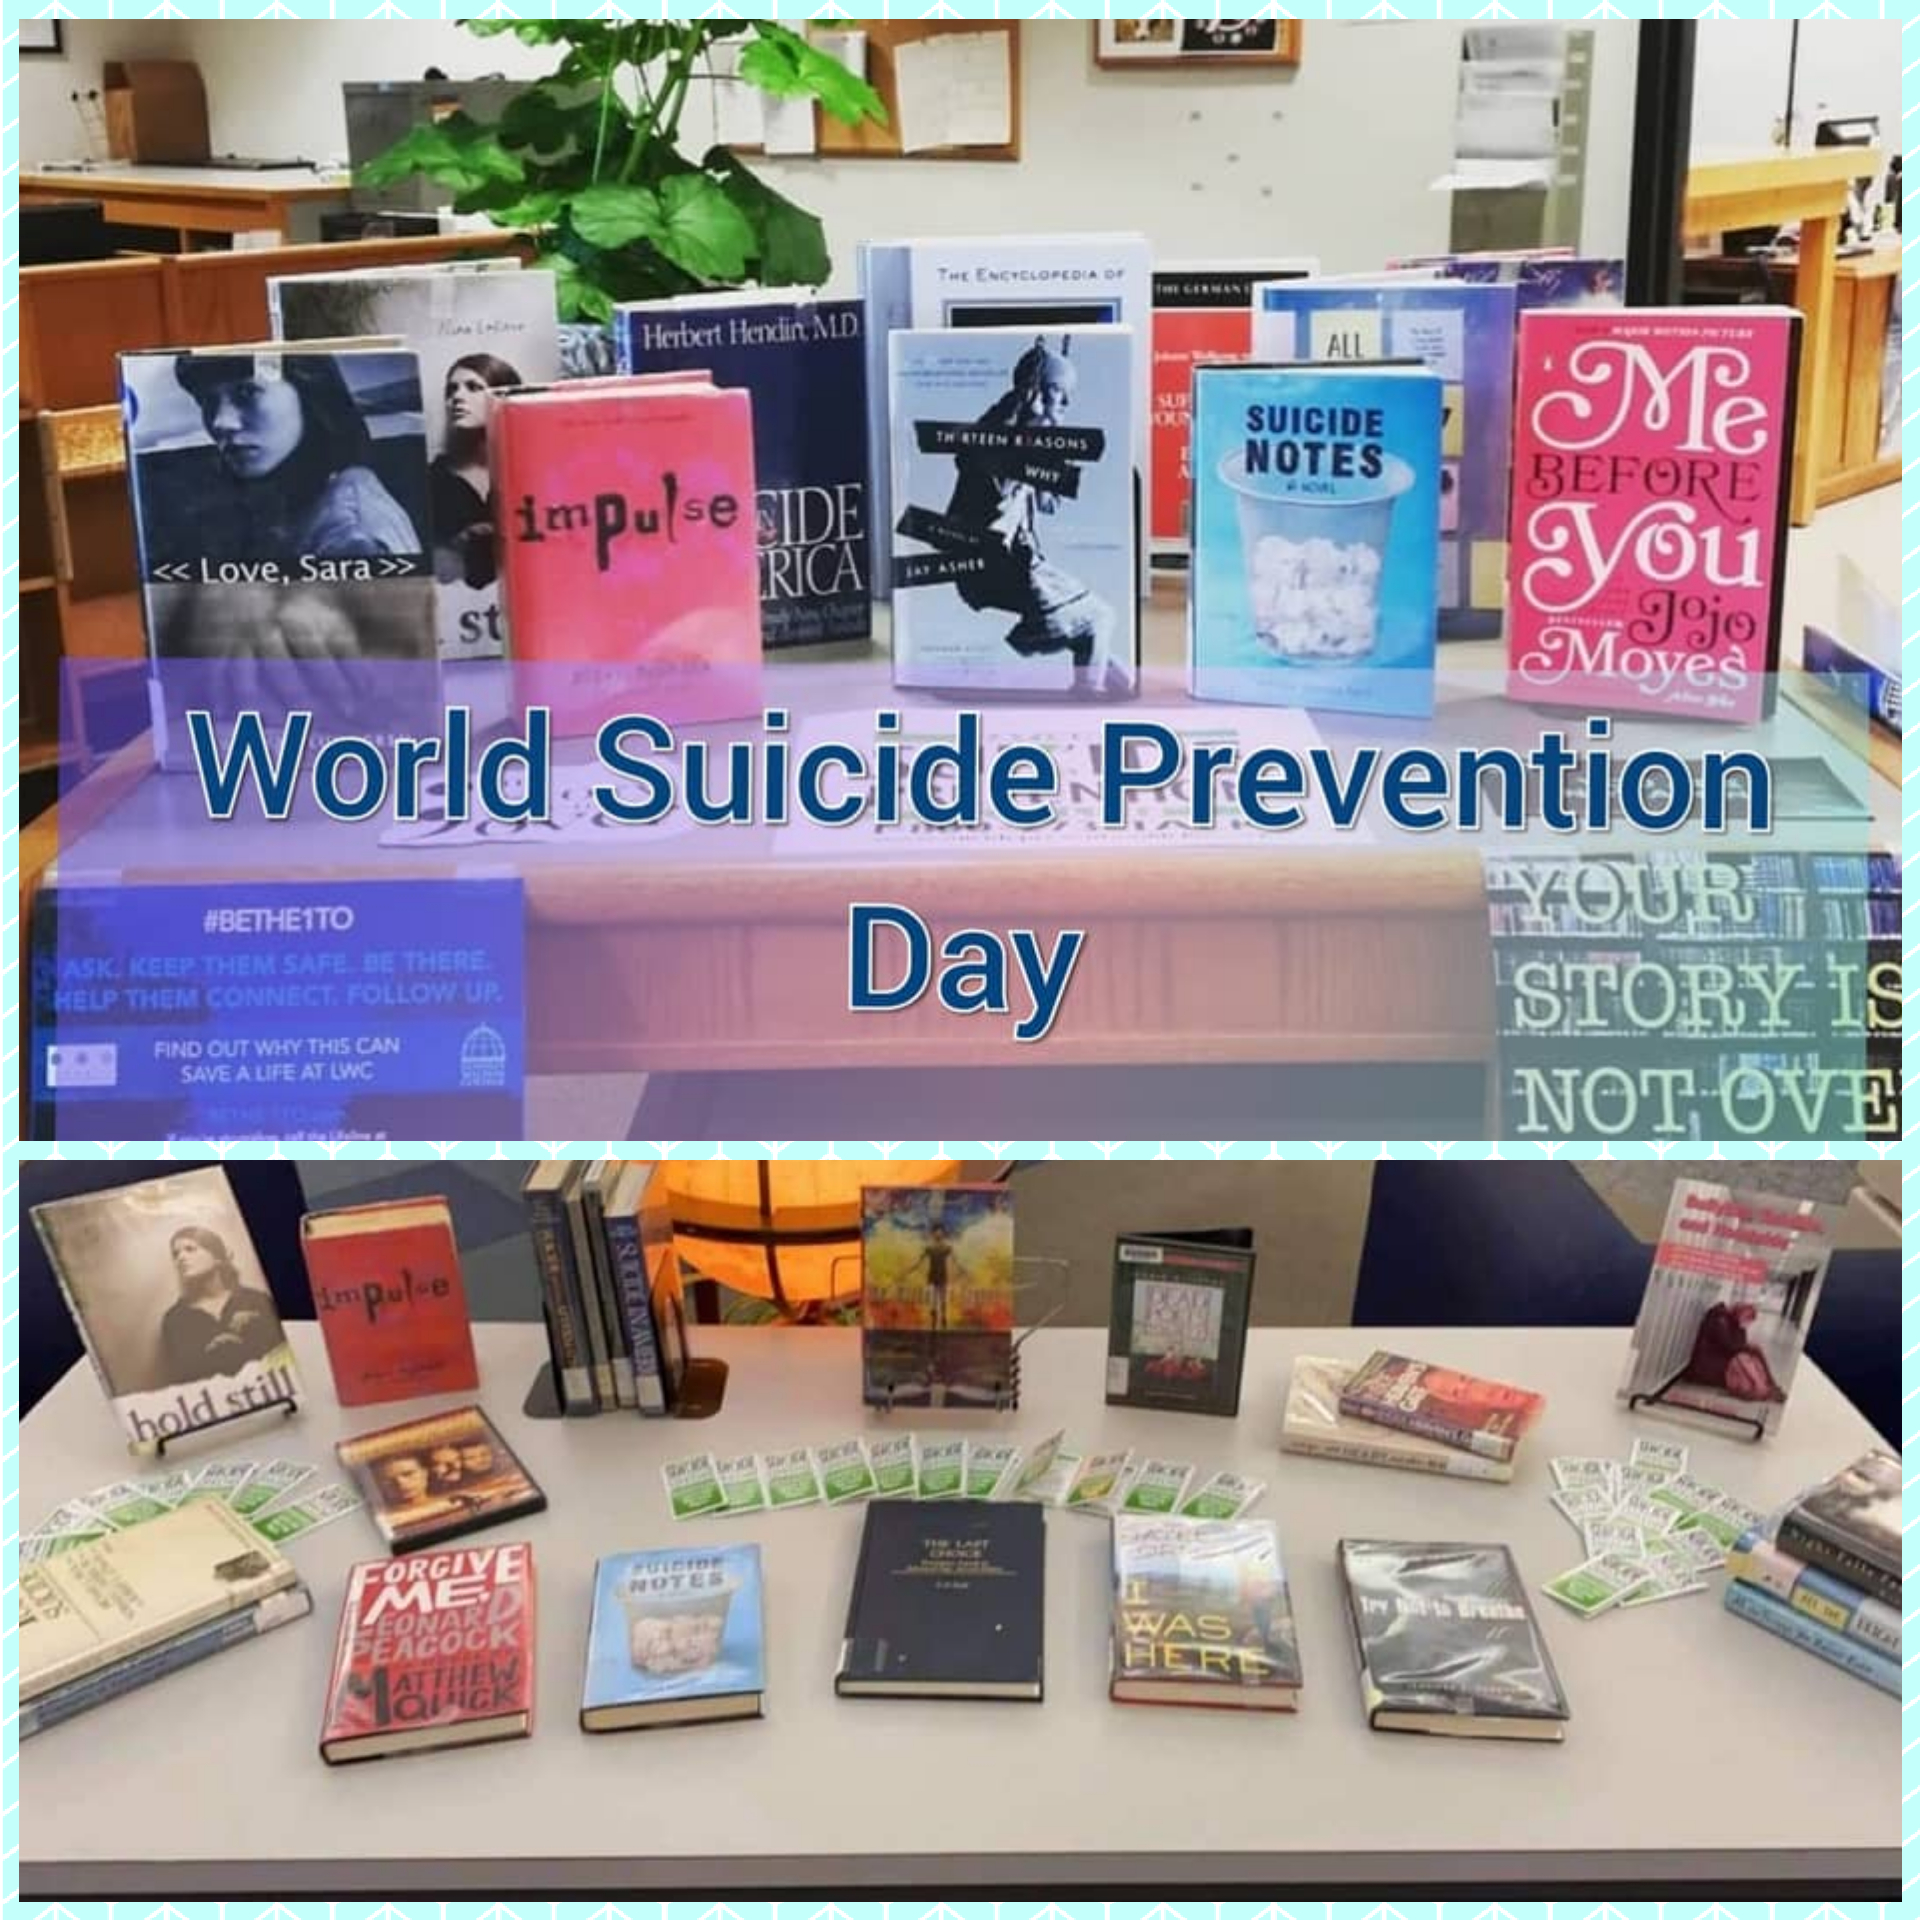 Suicide Prevention displays from 2019& 2020 with the link to the National hotline